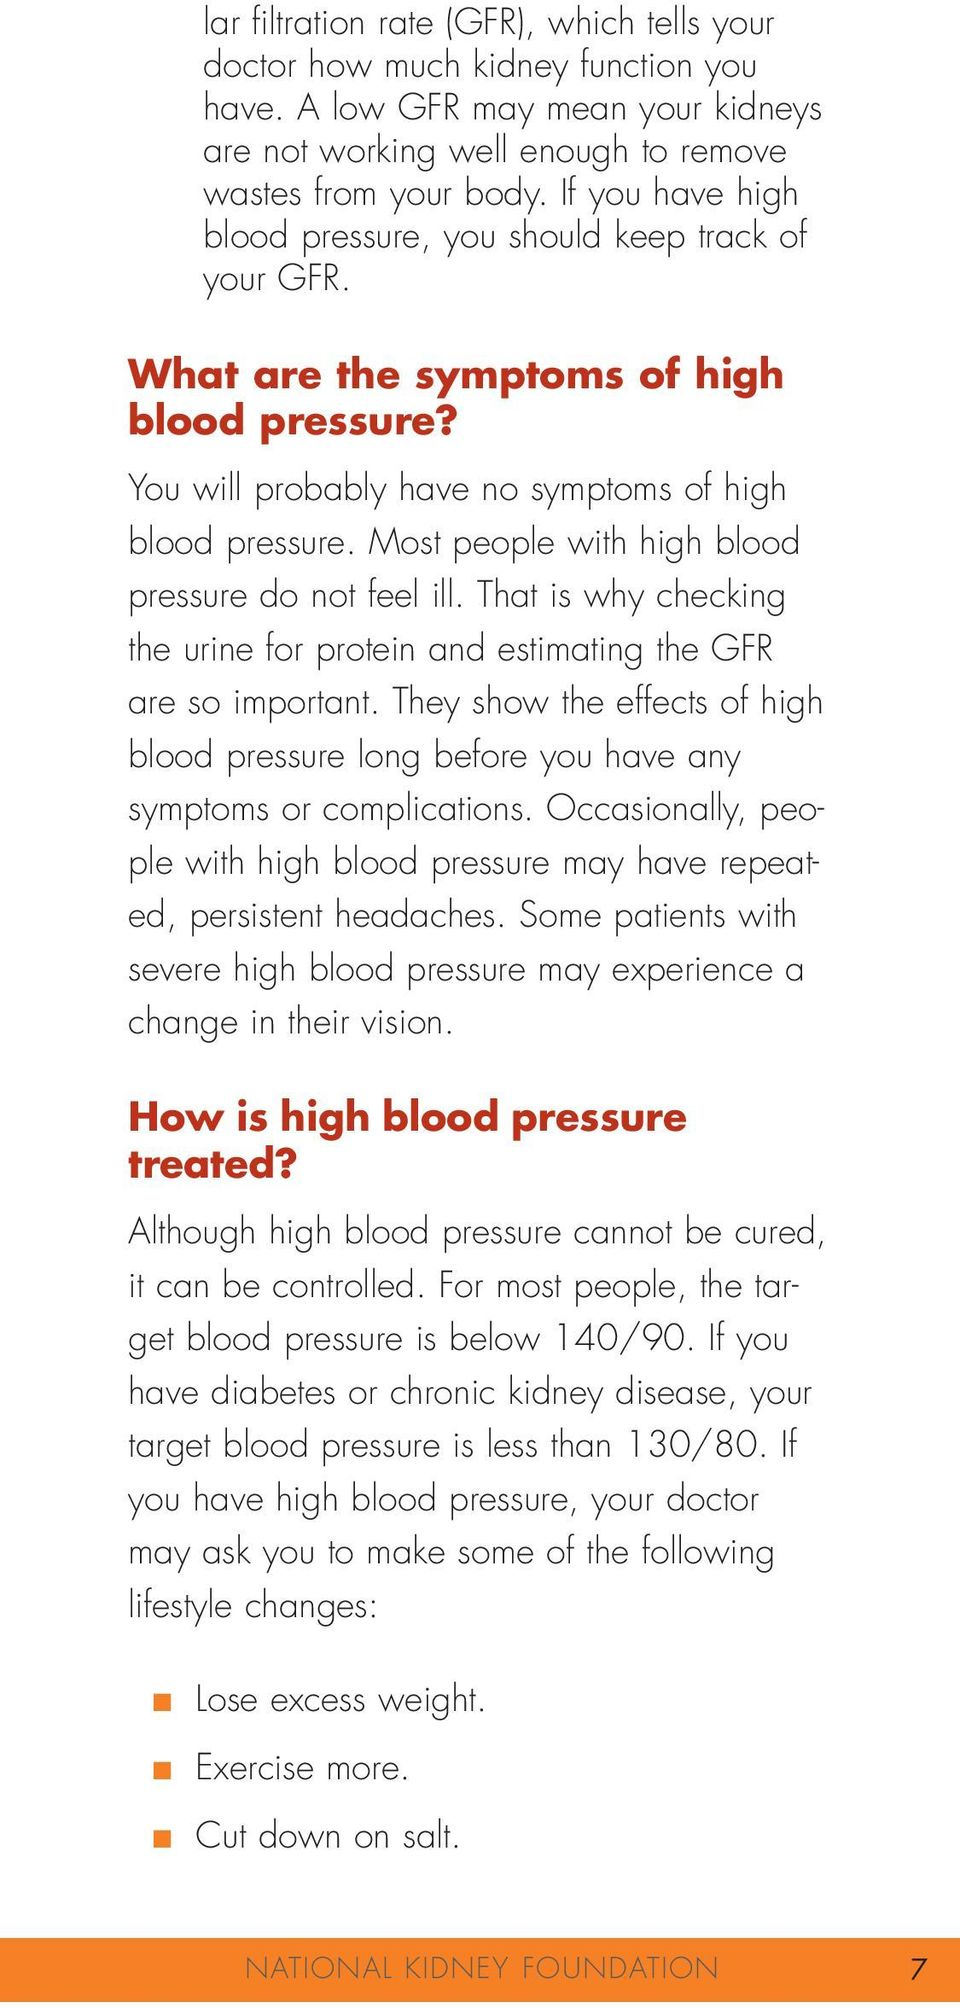 Most people with high blood pressure do not feel ill. That is why checking the urine for protein and estimating the GFR are so important.